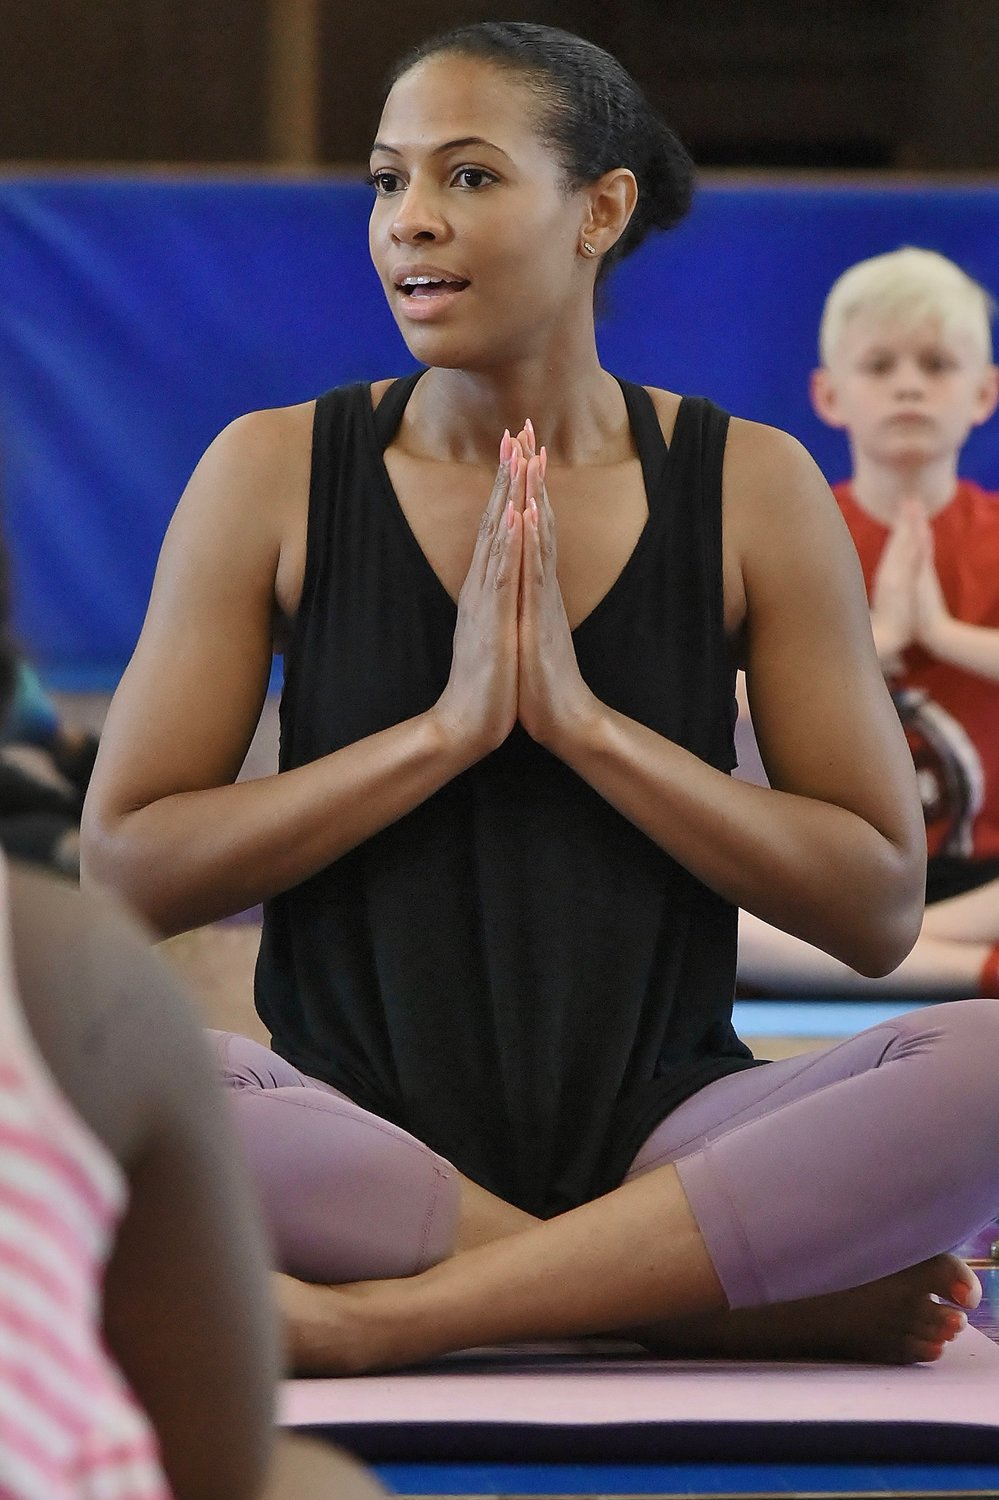 Certified Yoga Instructor Ashley Johnson teaches the Yoga ... Anyone? program at the J.H. Morgan Gym in Cartersville June 4.